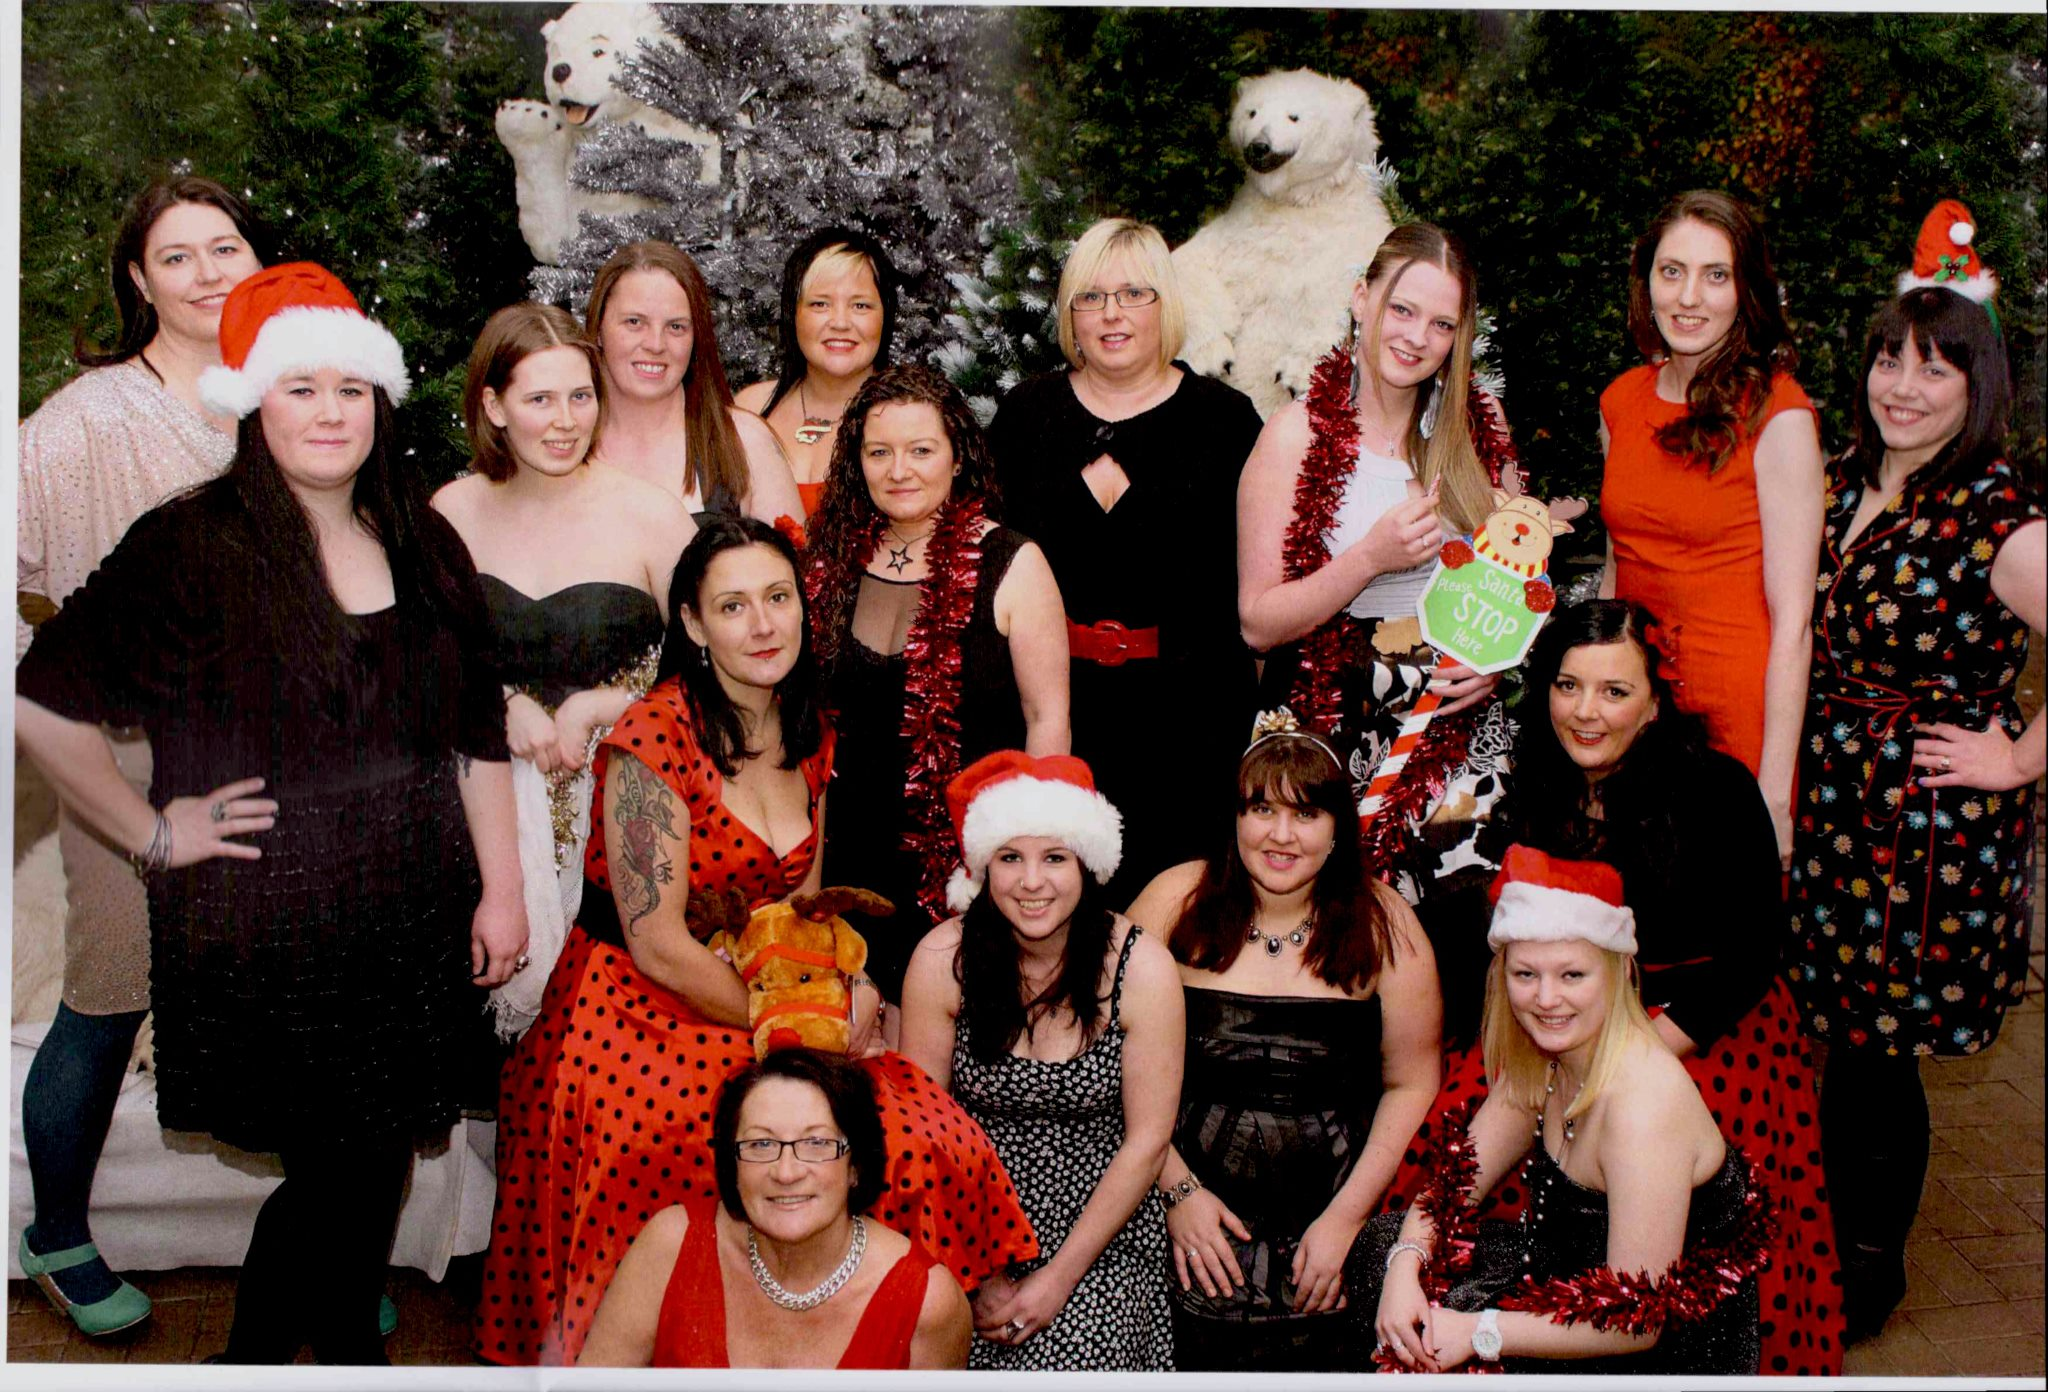 A Christmas-themed group photo from the Lothian Derby Dolls 2013 calendar.